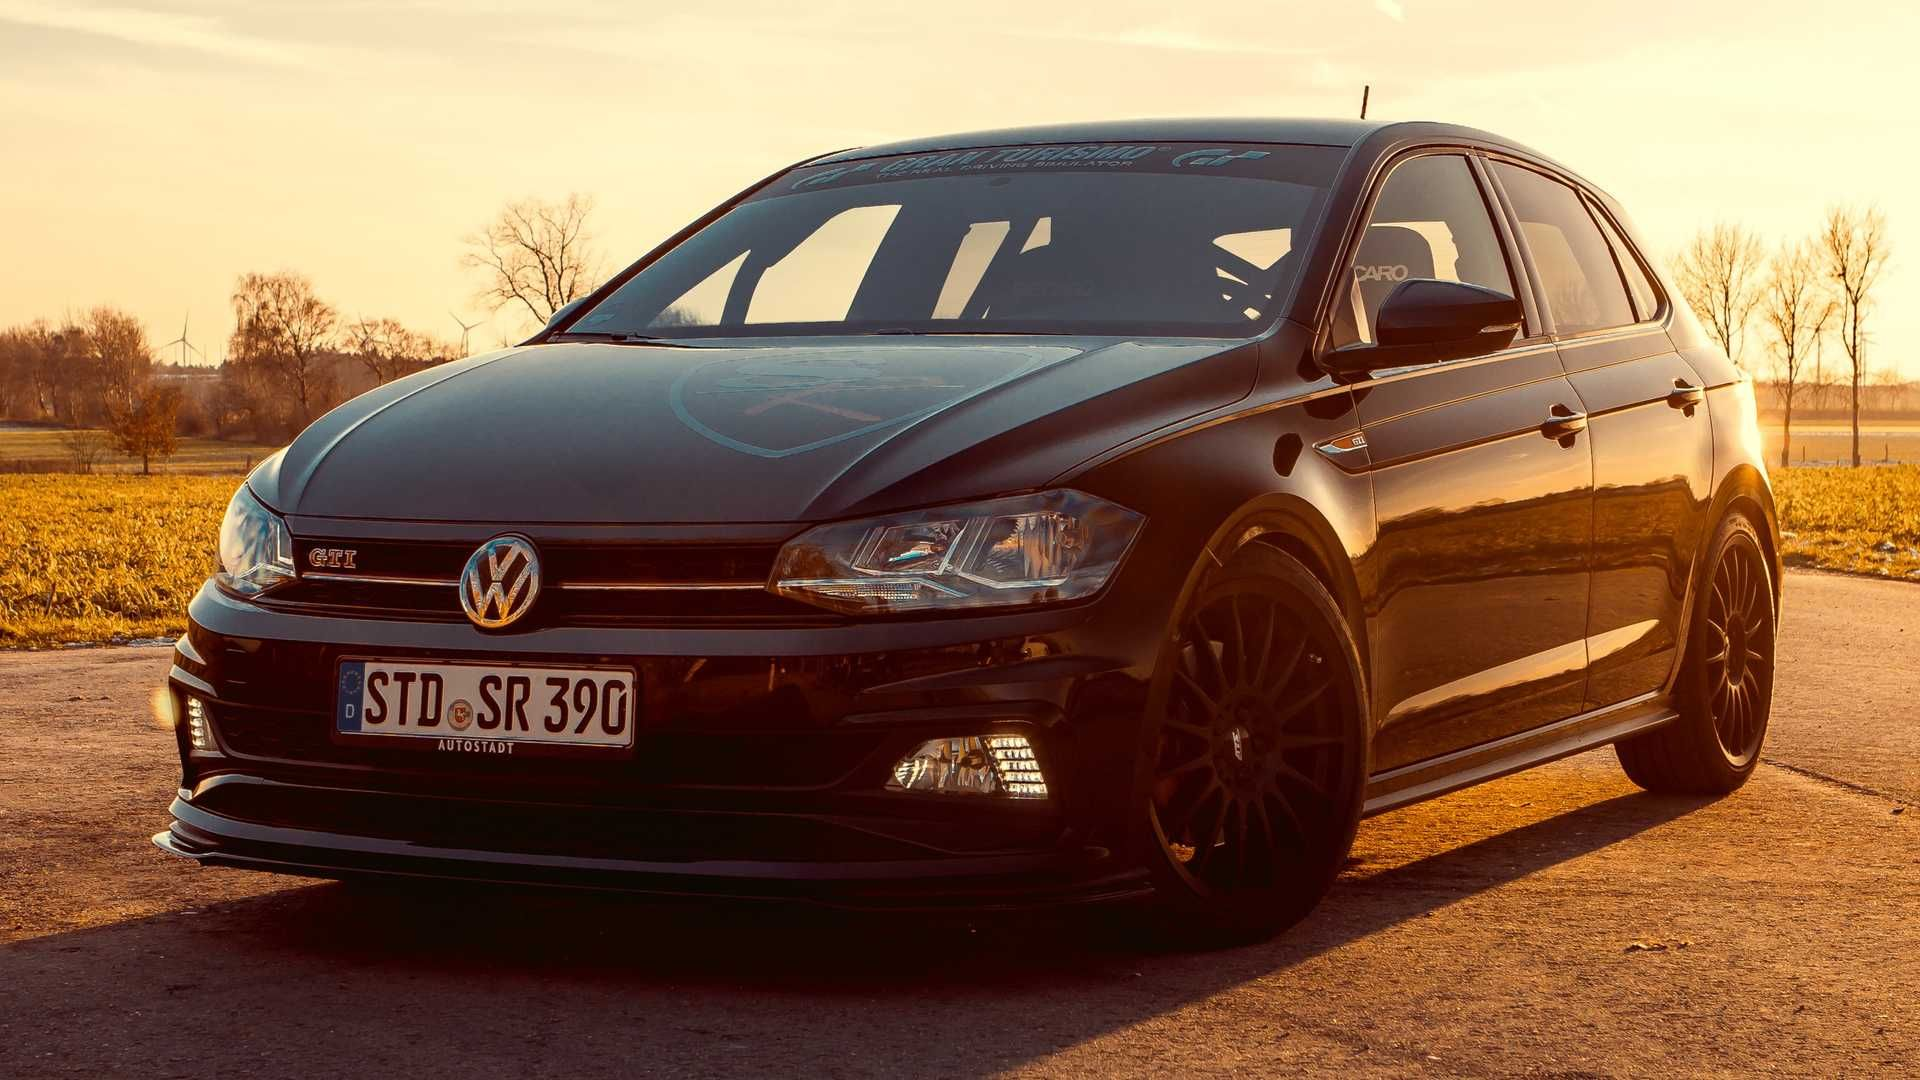 Volkswagen Polo Gti By Siemoneit Racing Superando Al Golf R